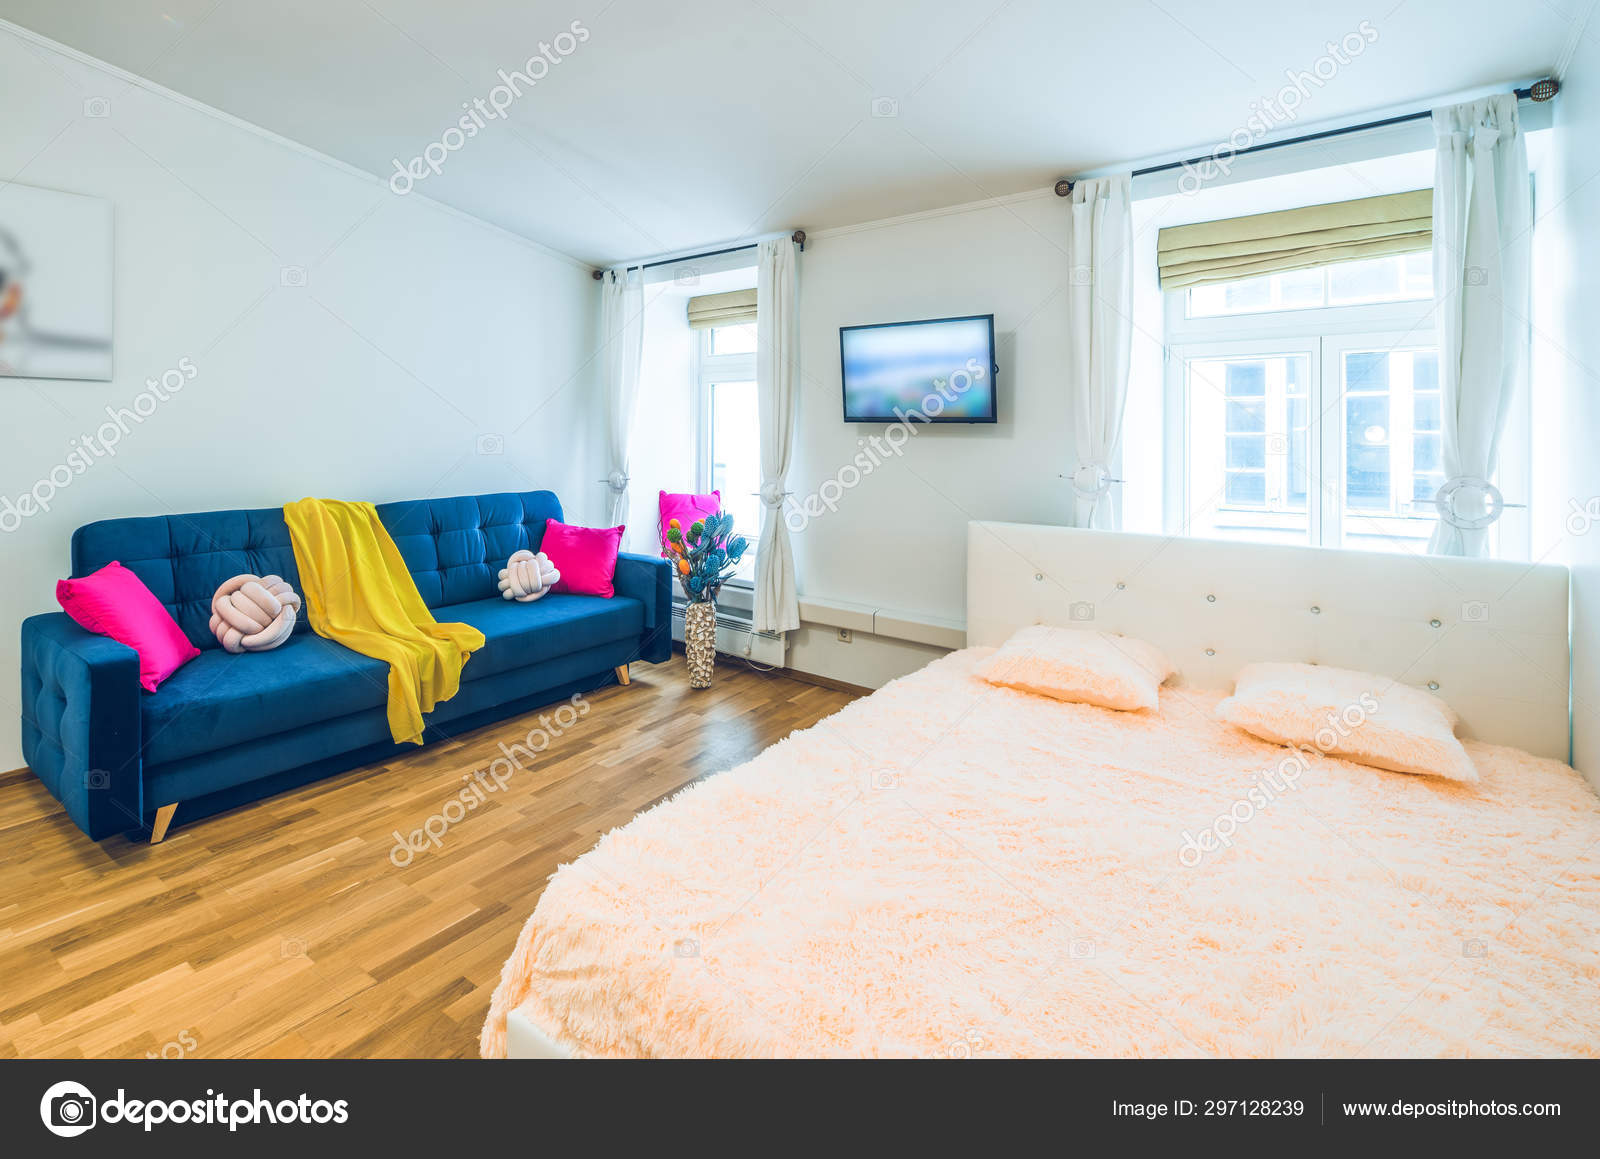 Tremendous Modern Interior Of Studio Apartment Cozy Sofa Bed And Gmtry Best Dining Table And Chair Ideas Images Gmtryco